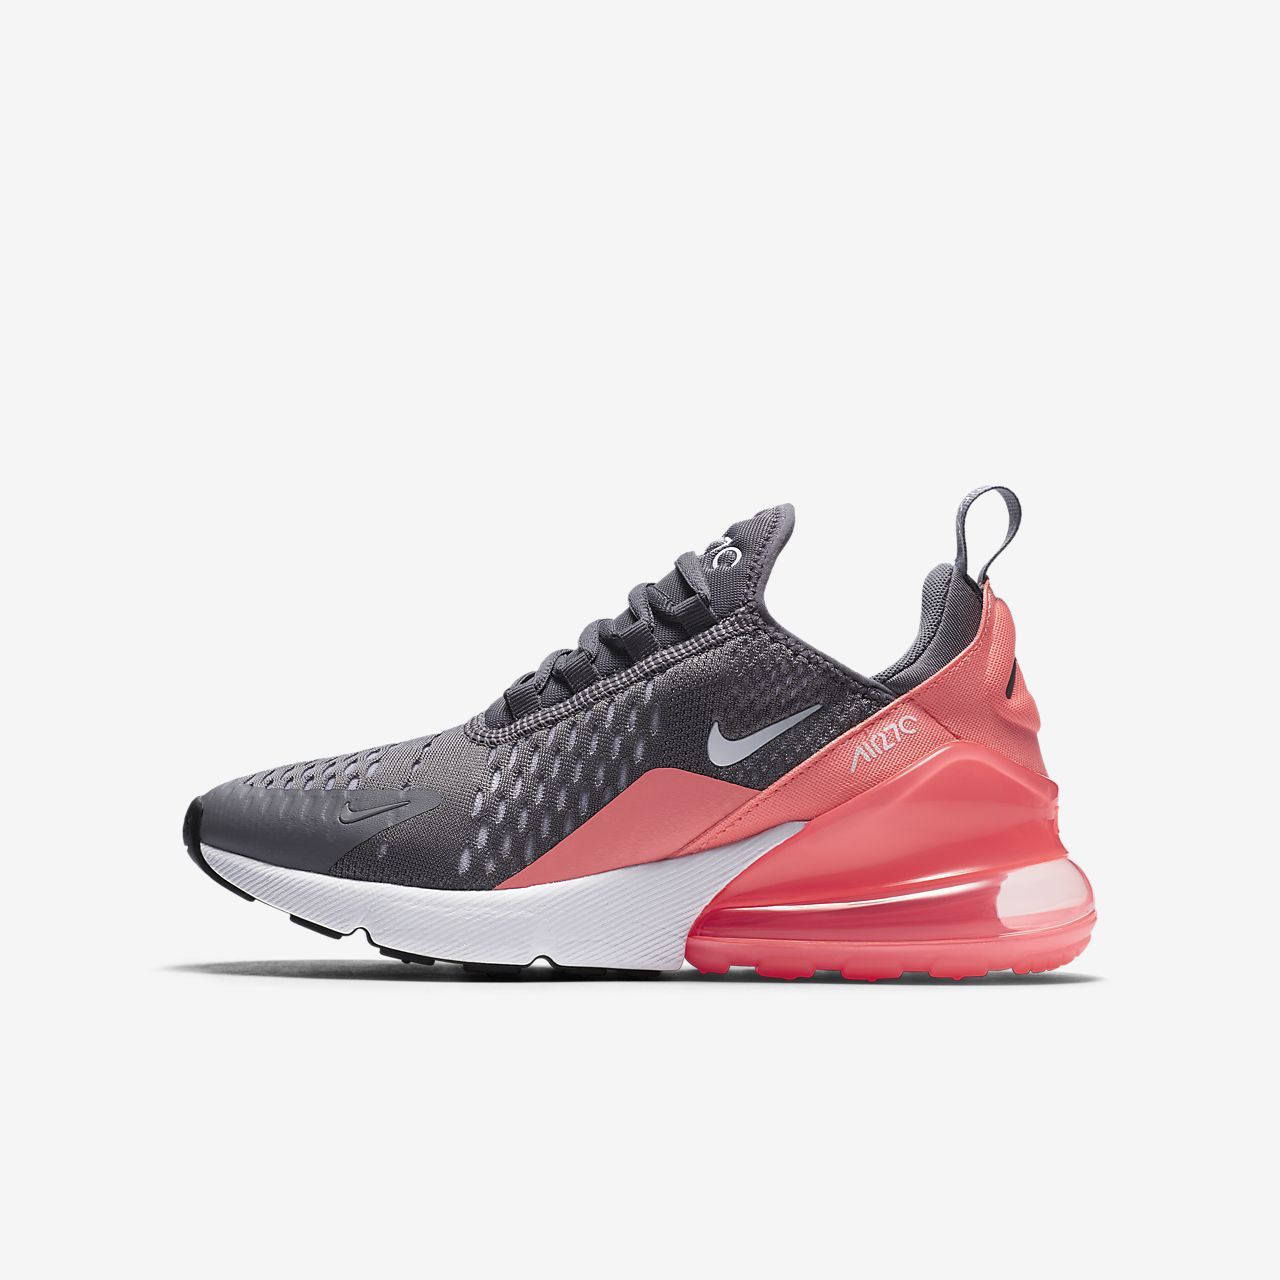 Nike Youth Air Max 90 Racer Pink Black Leather Trainers 38.5 EU oXxkeji